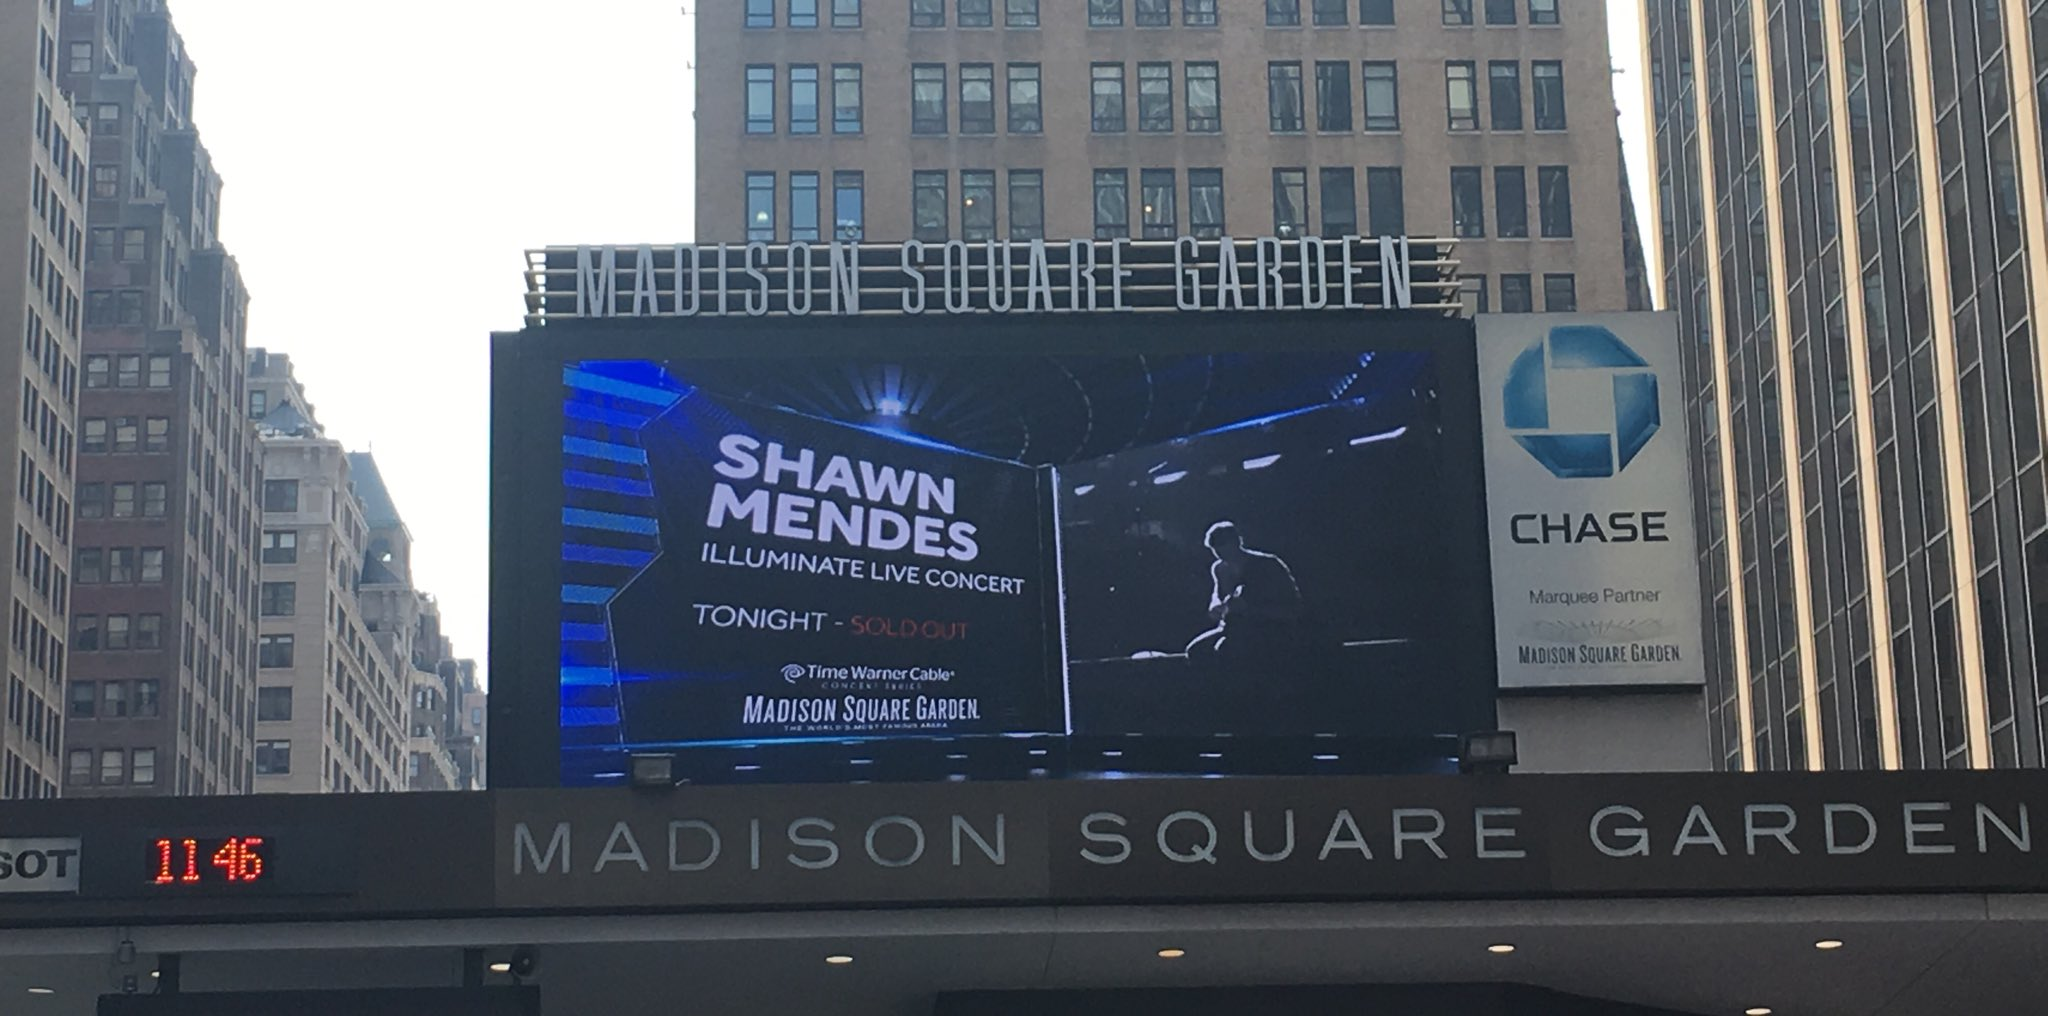 Shawn mendes rocks madison square garden for Shawn mendes live at madison square garden